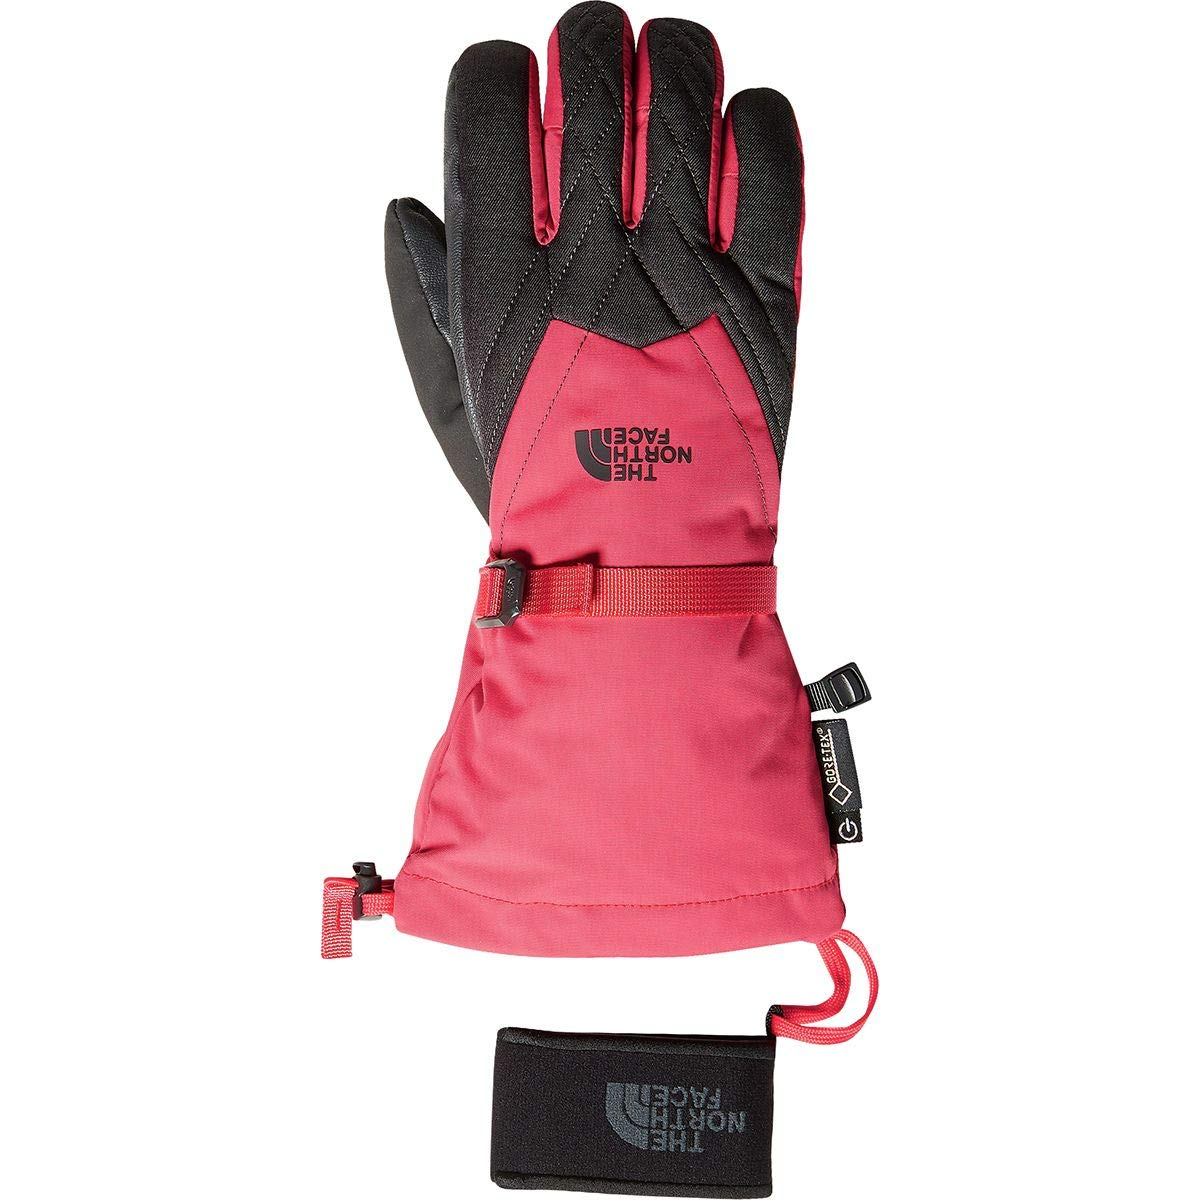 The North Face Women's Montana Gore-Tex¿ Gloves Teaberry Pink/Tnf Dark Grey Heather LG